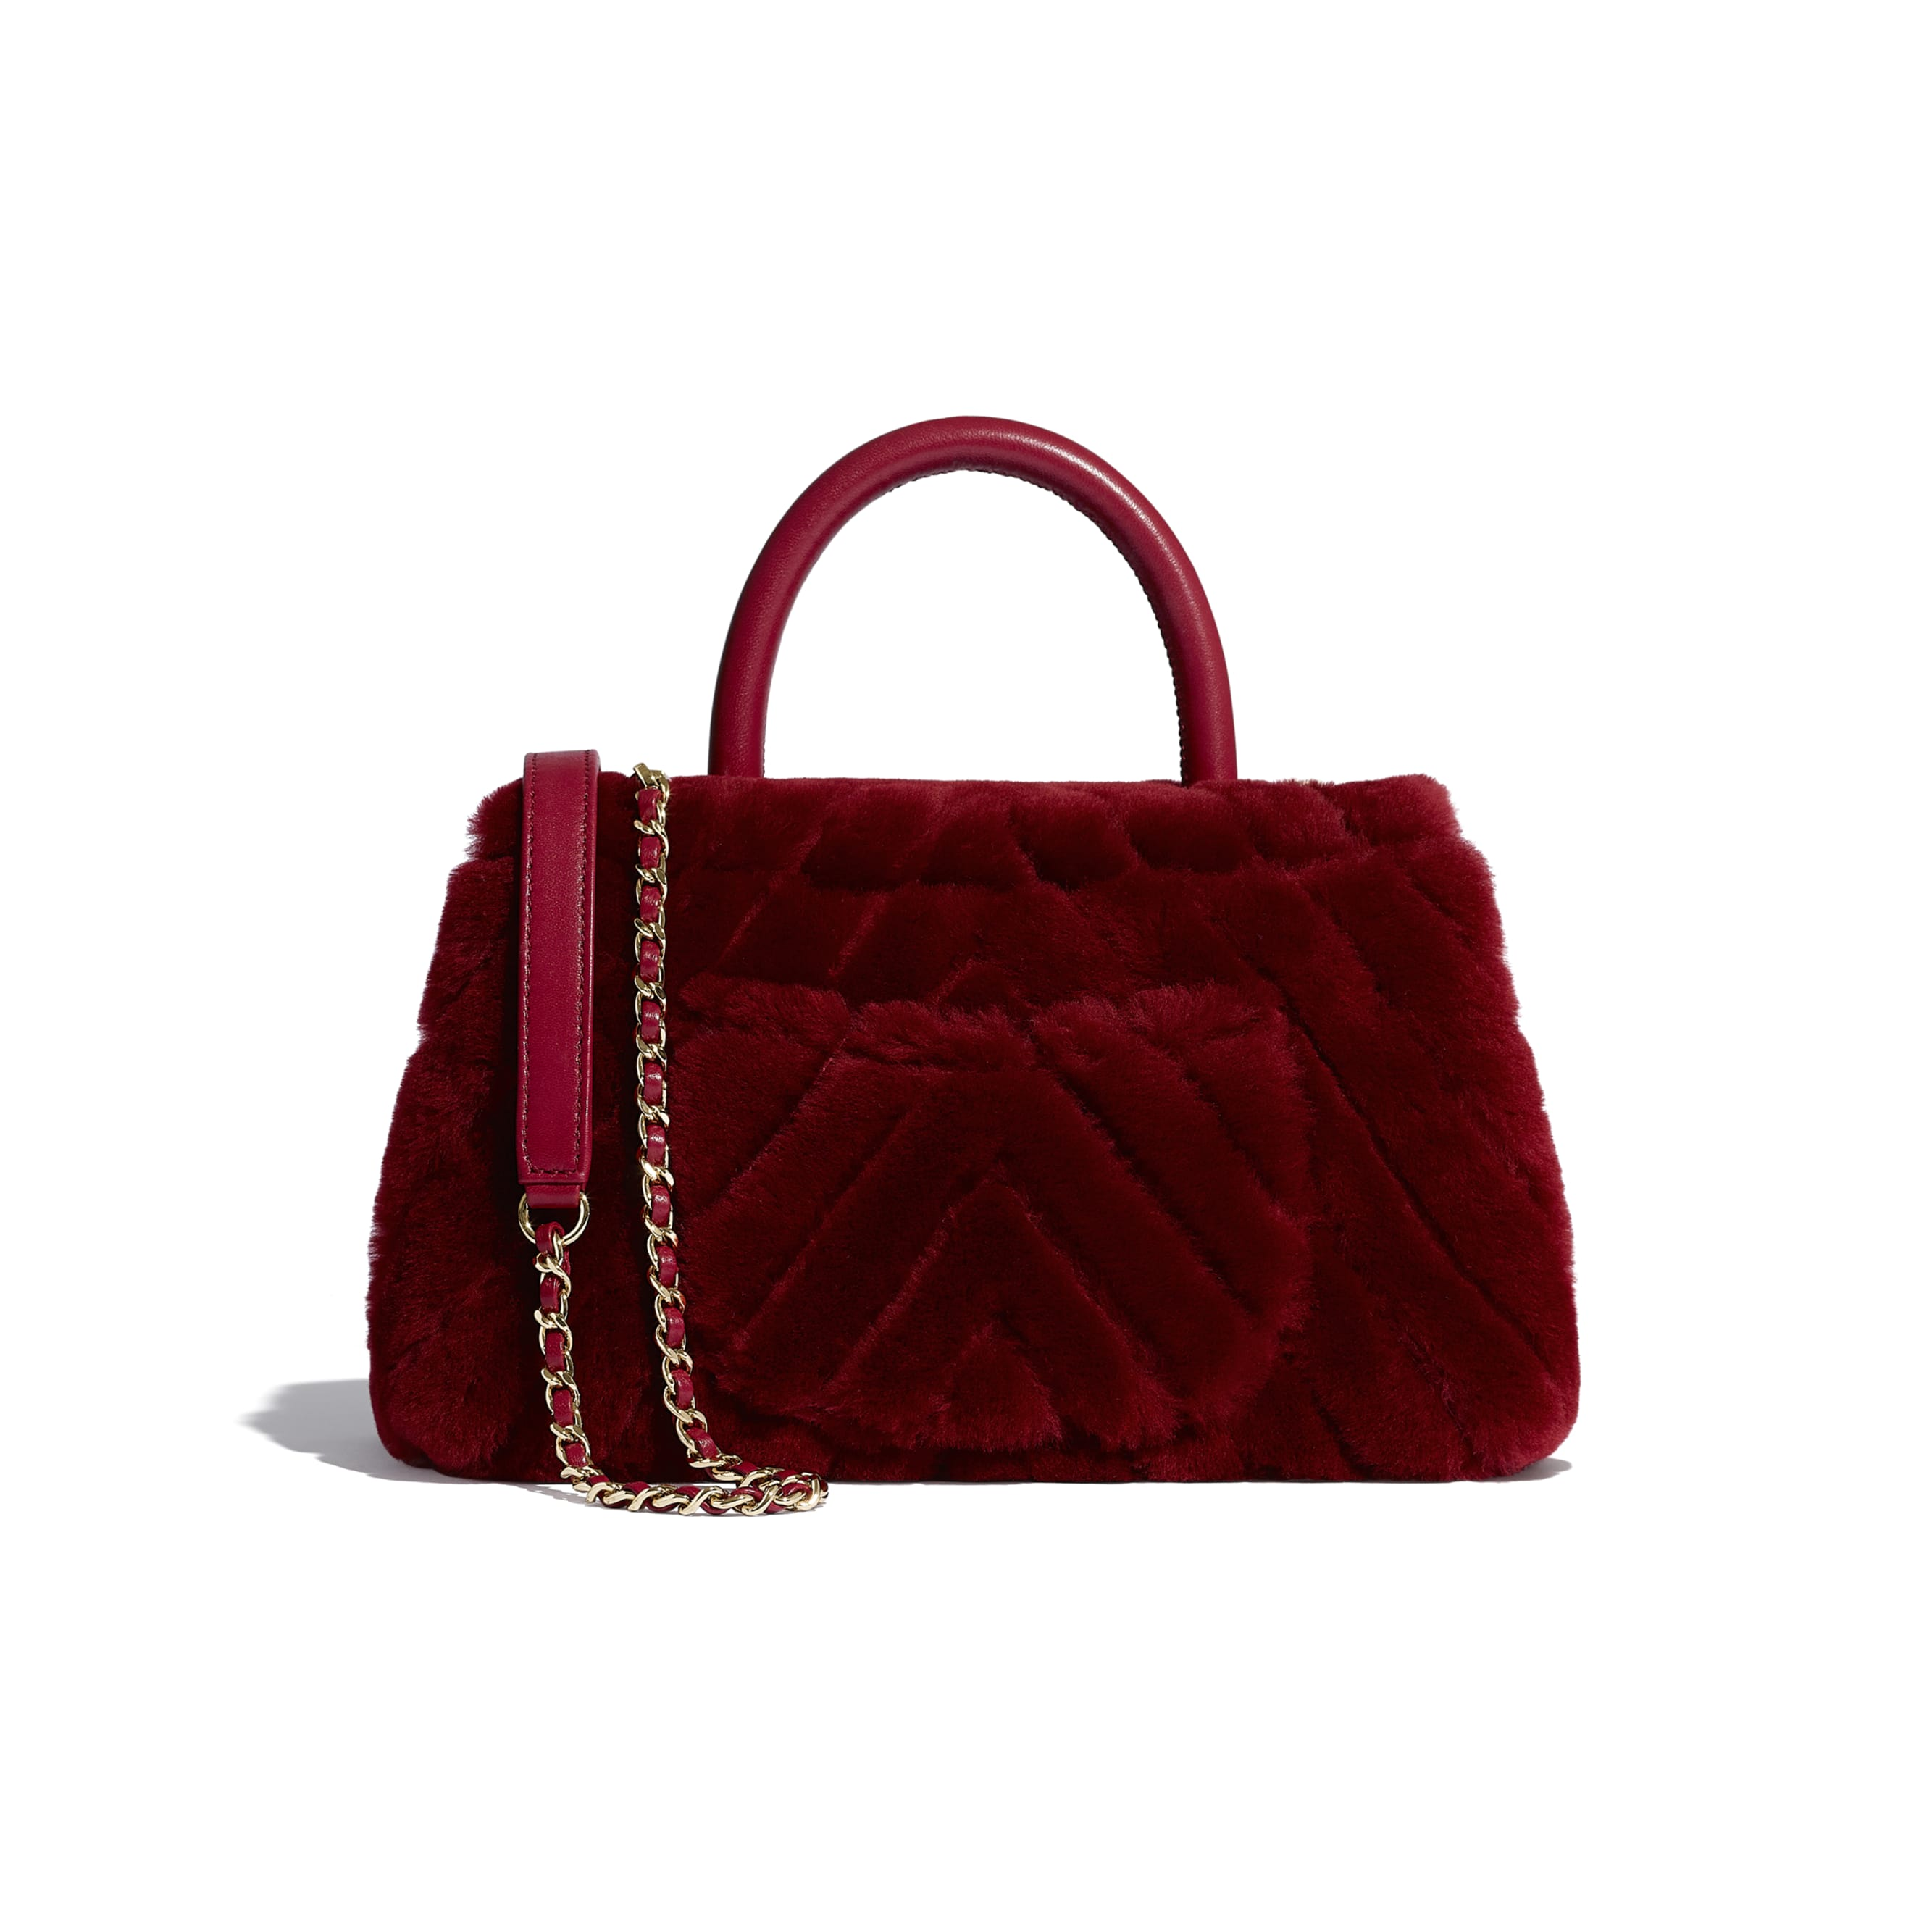 Small Flap Bag With Top Handle - Burgundy - Shearling Lambskin, Lambskin &Gold-Tone Metal - Alternative view - see standard sized version